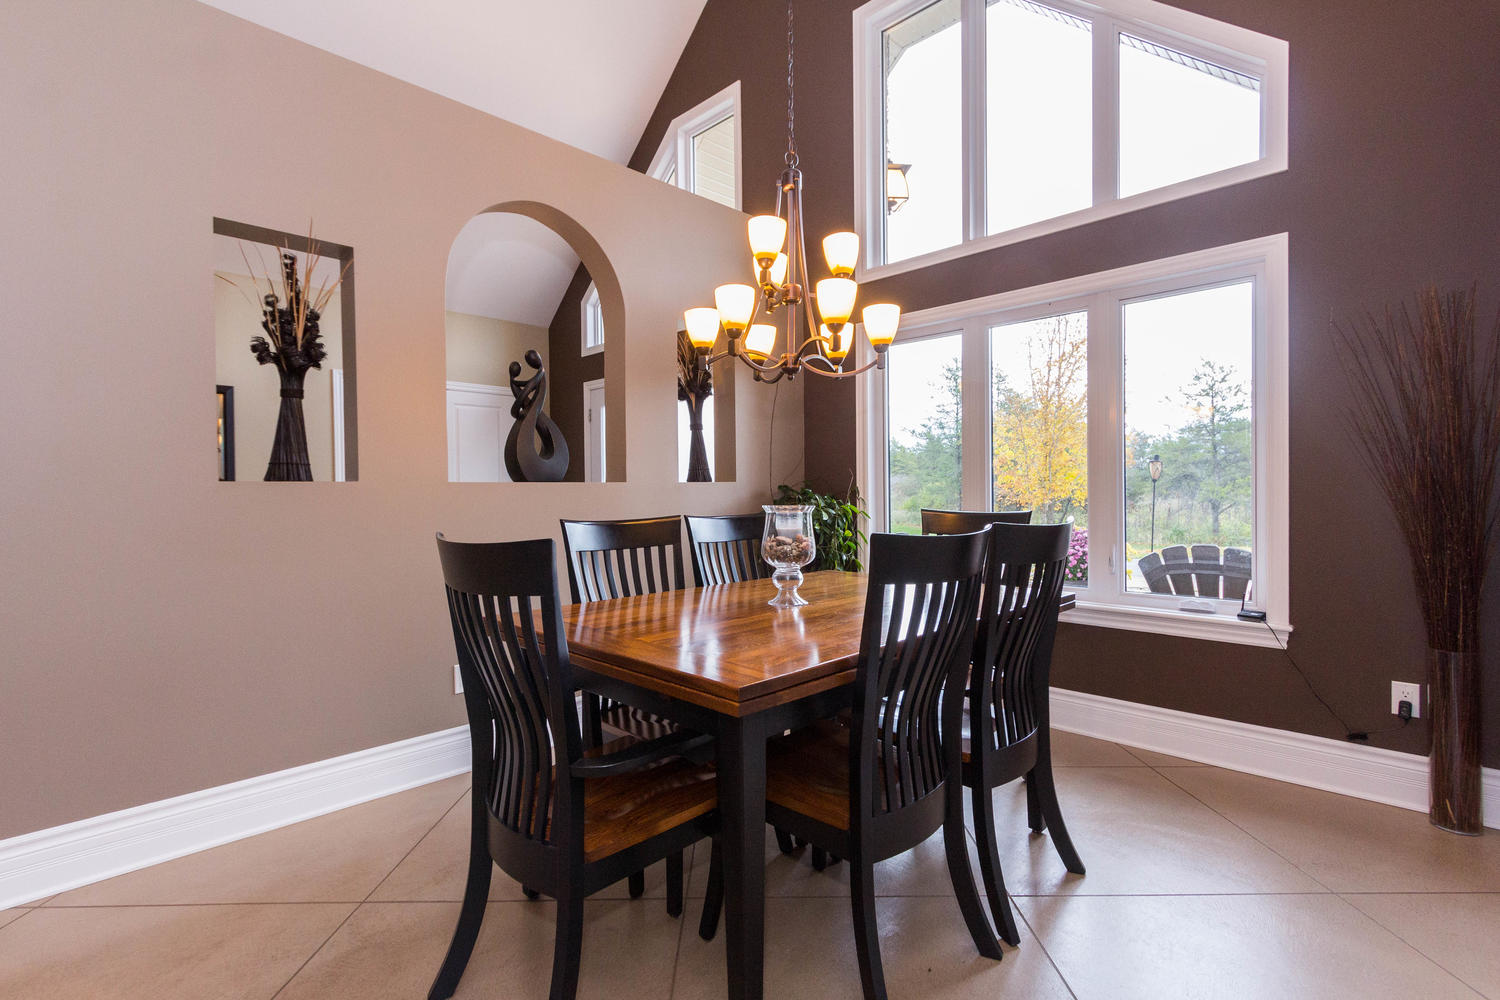 Dining area that can fit just about any sized table you have!  Floor to ceiling windows to allow for a load of natural light to flood through.